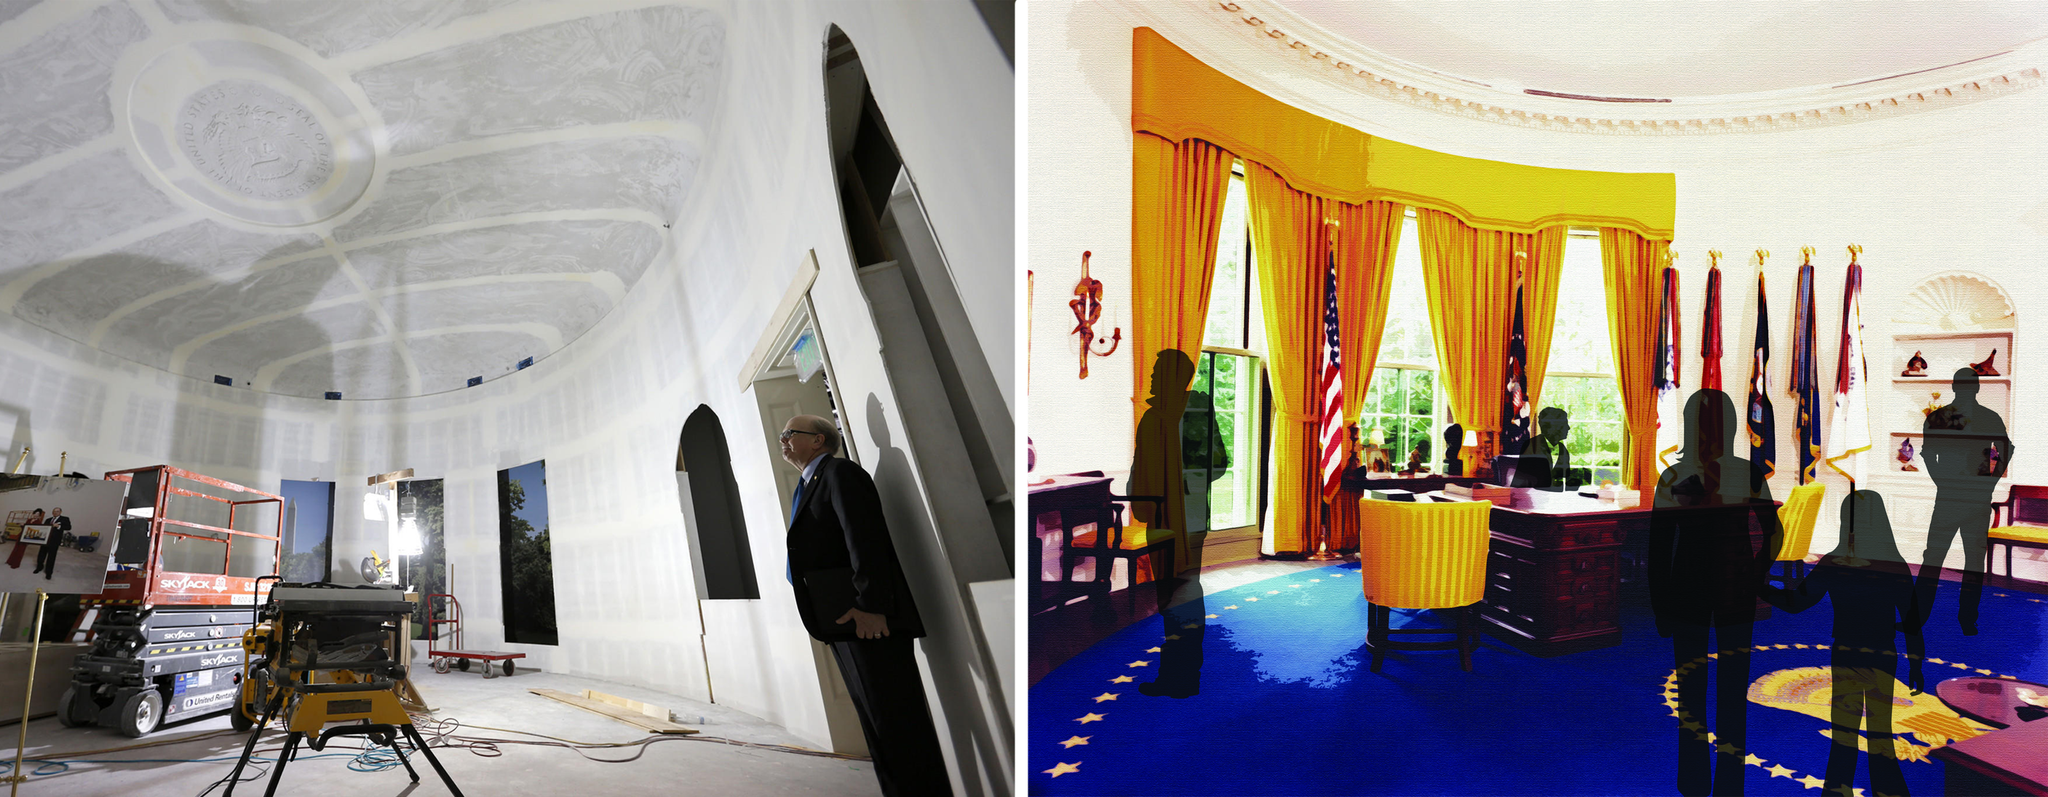 At left, a replica of President Nixon's Oval Office under construction, part of the new Nixon Library galleries set to open in October after a $15-million renovation. On the right is an artist's rendering of the room.